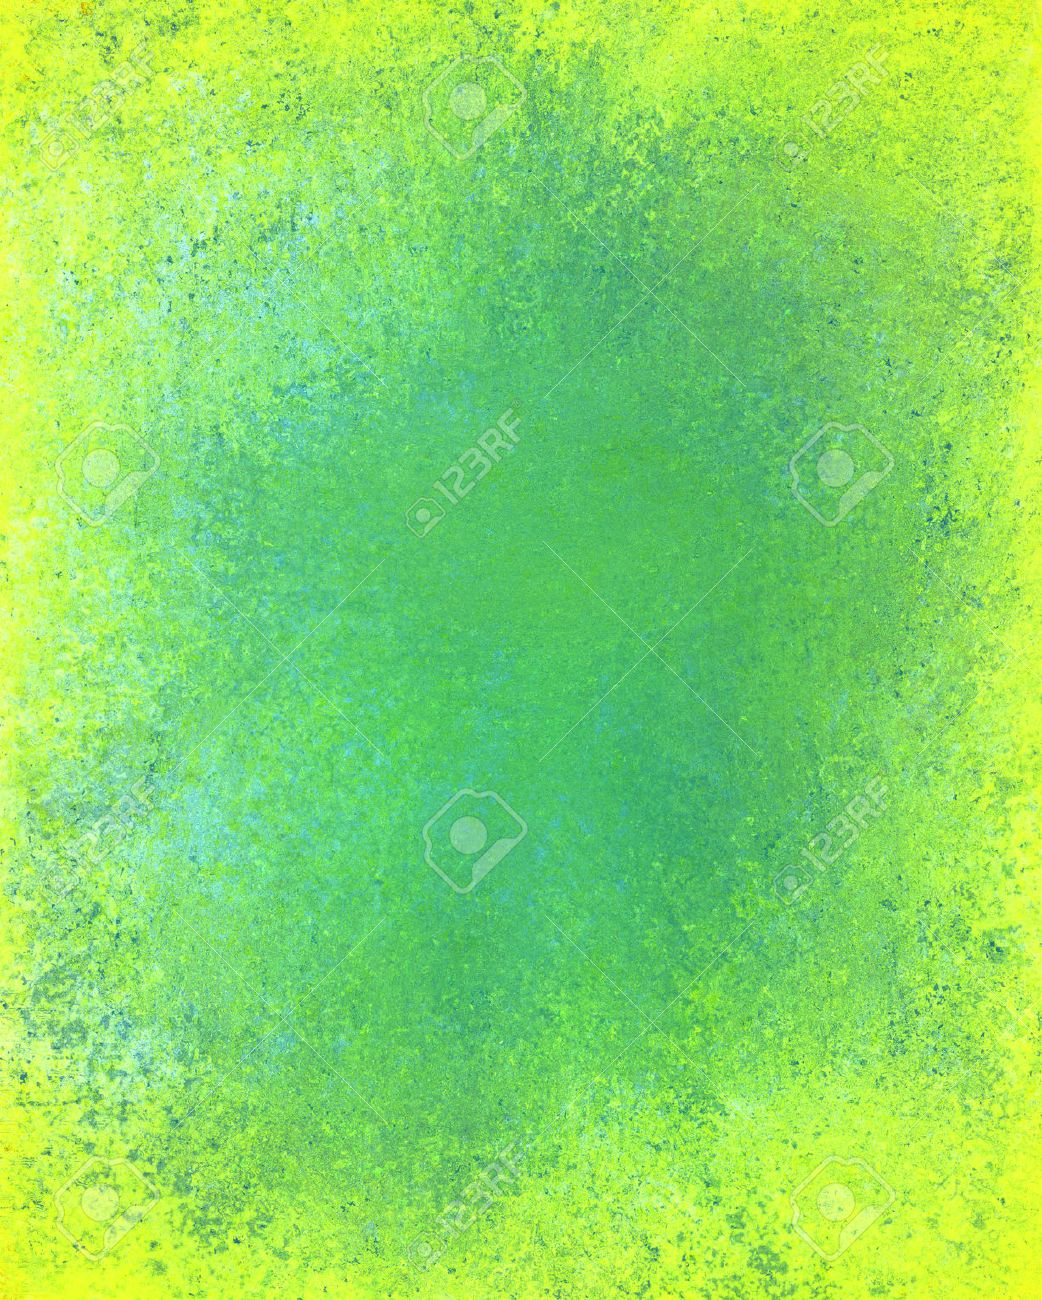 Lemon Lime Bright Colored Paper. Distressed Rough Background ...